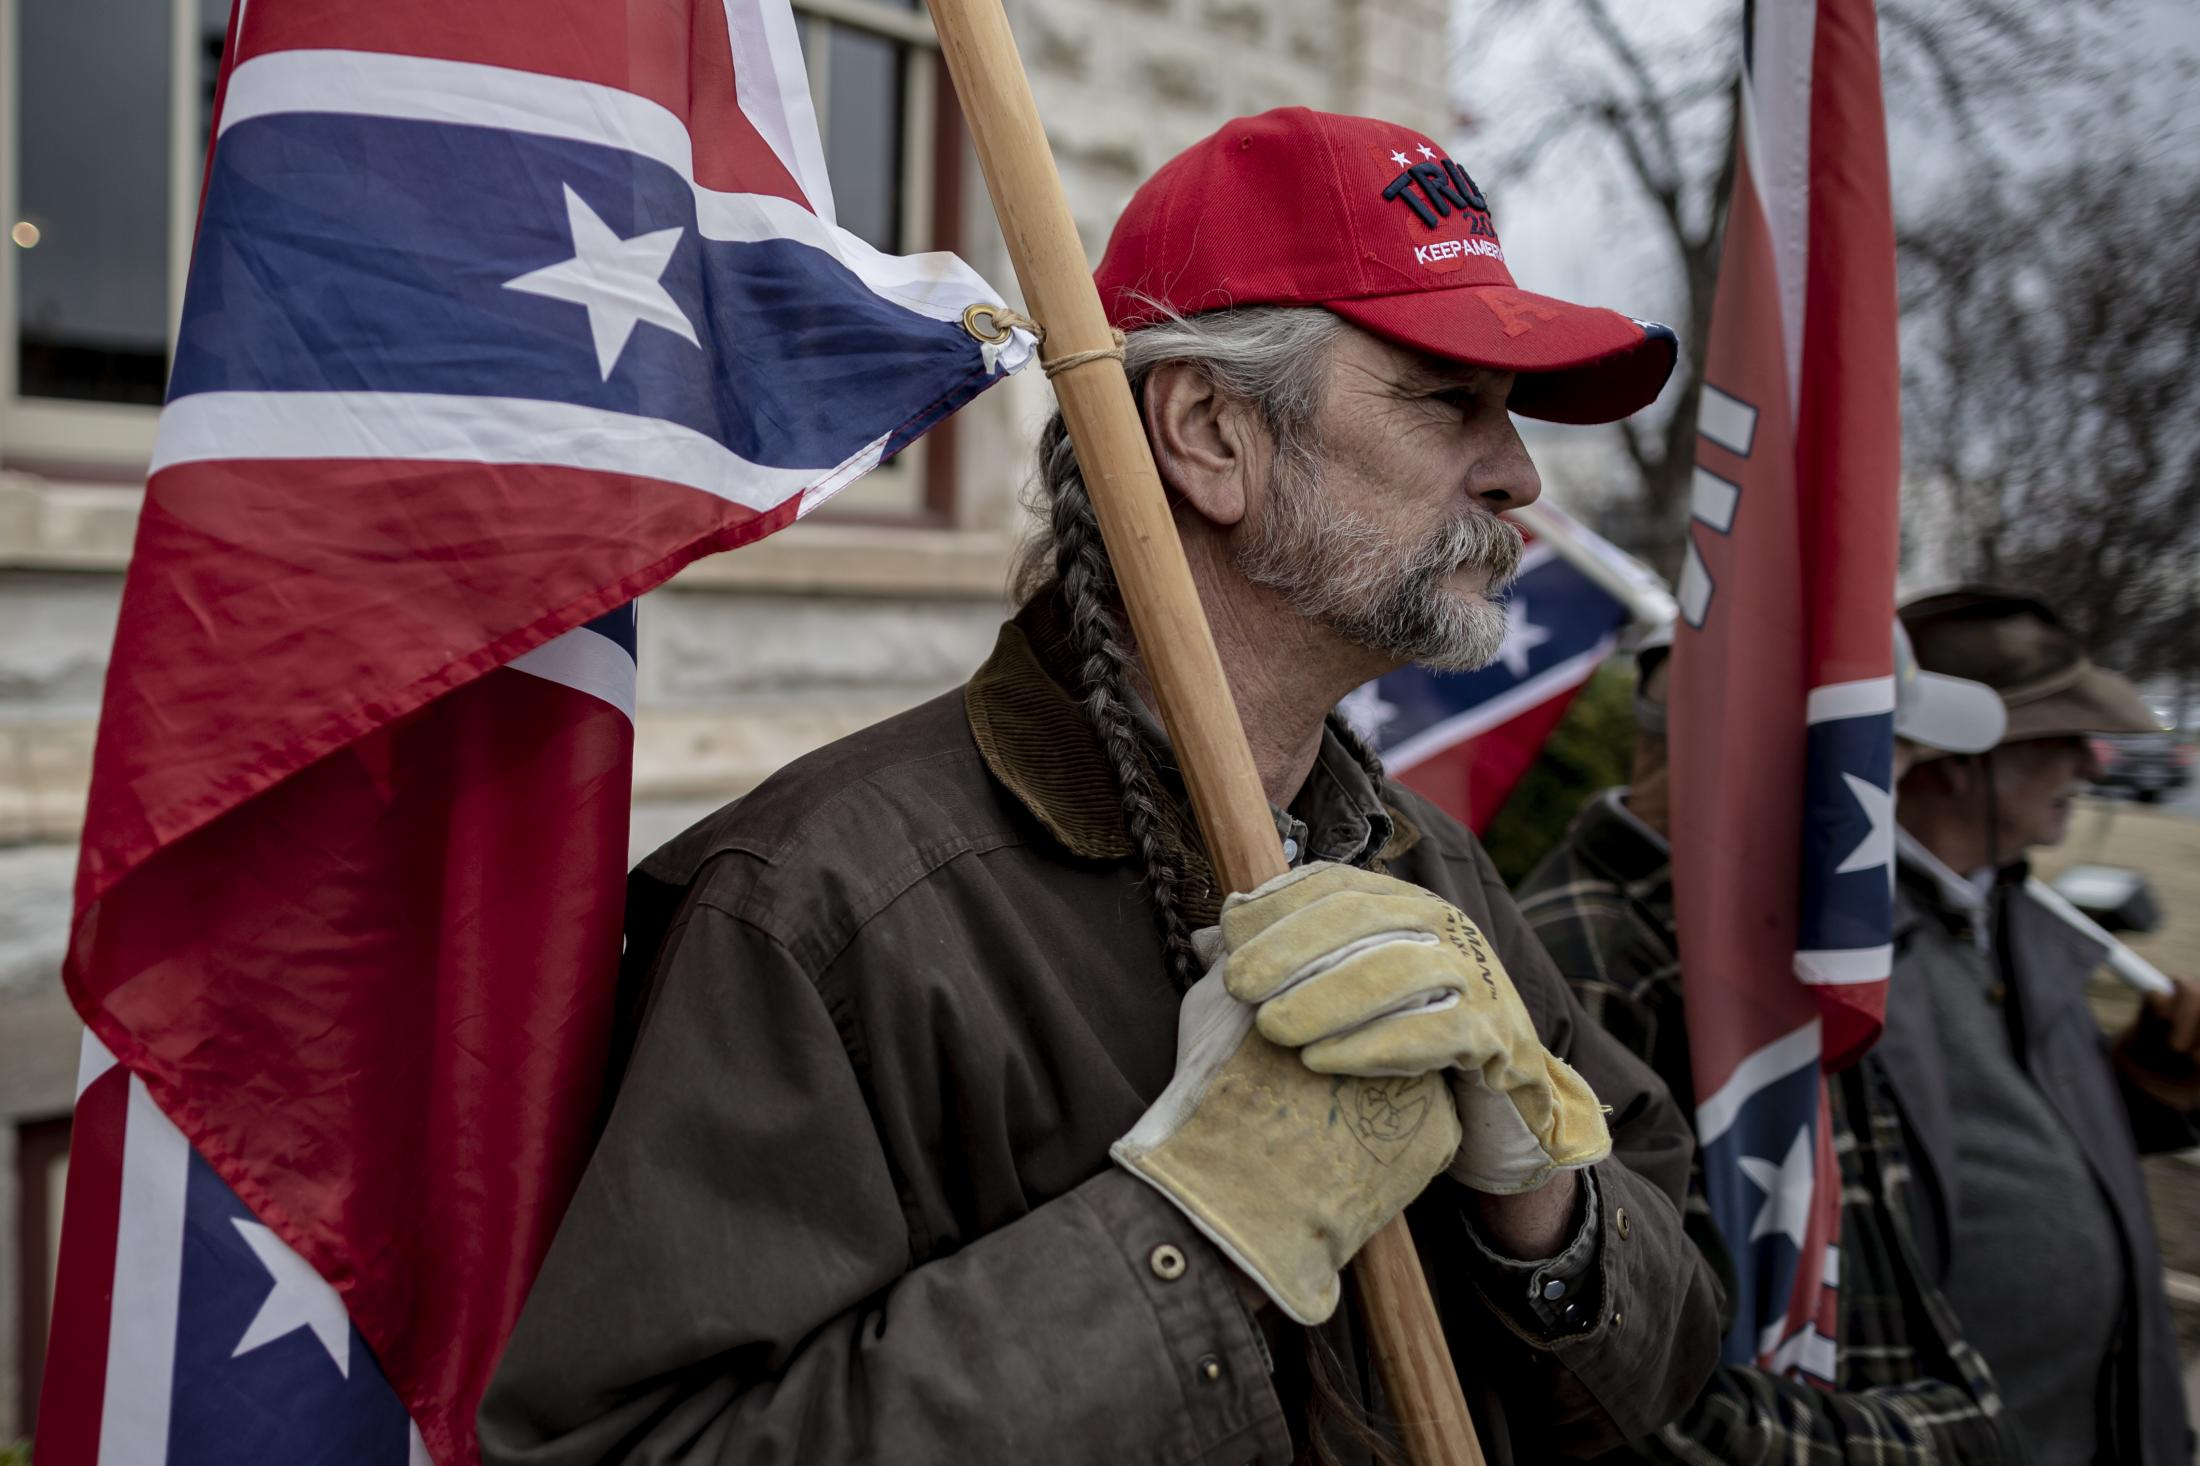 A Weatherford man, who is a member of the Sons of the Confederacy, holds a confederate flag close to his chest during an annual Confederate Veterans Memorial Day at the towns square. This Memorial Day is held one day after Martin Luther King Jr Day.